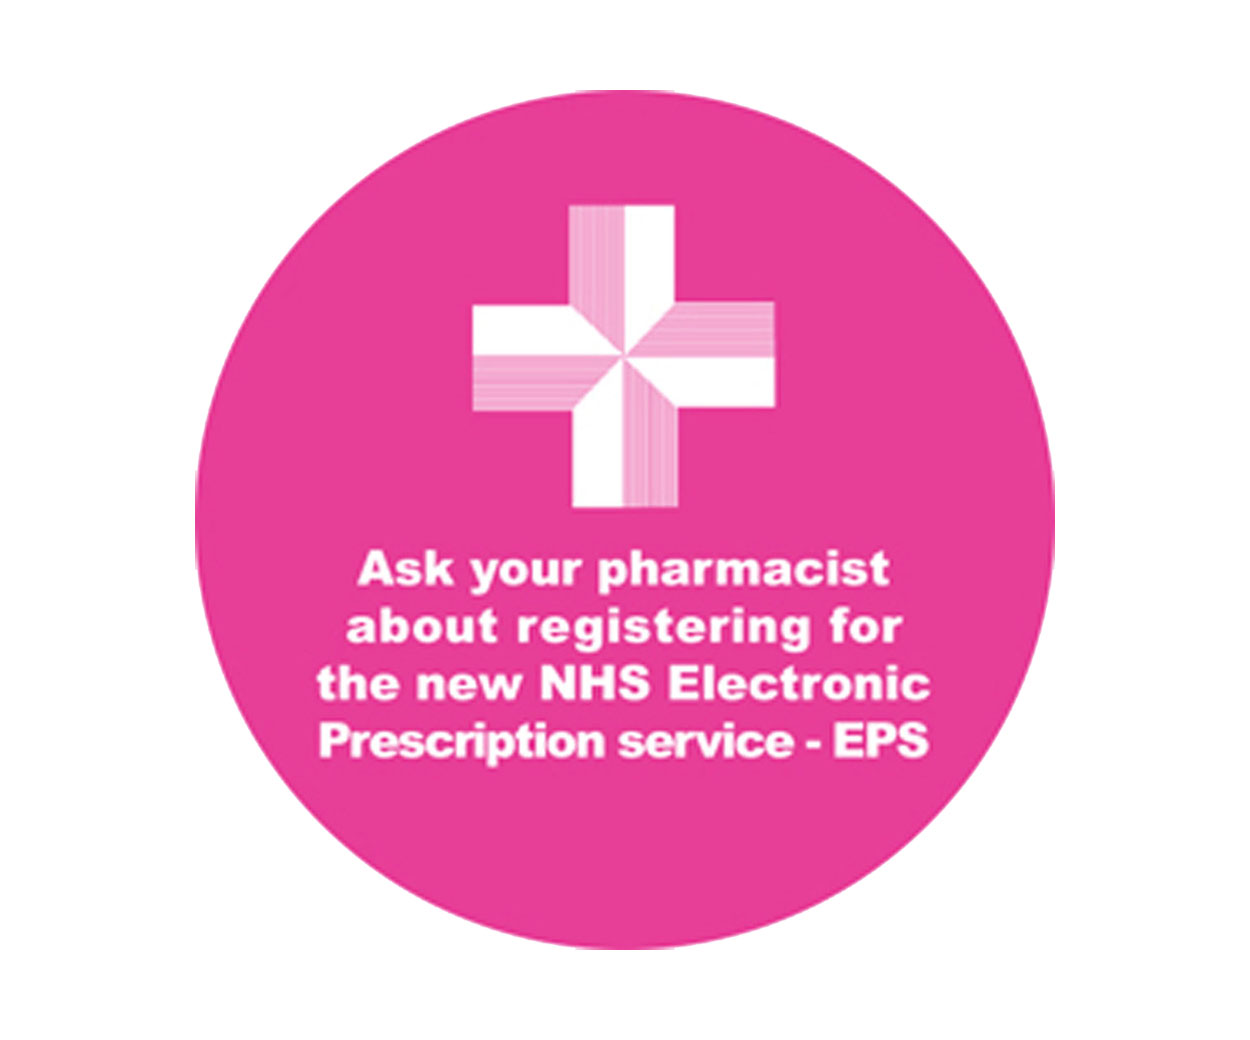 Ask Your Pharmacist Prescription Alert Sticker - Roll of 1000